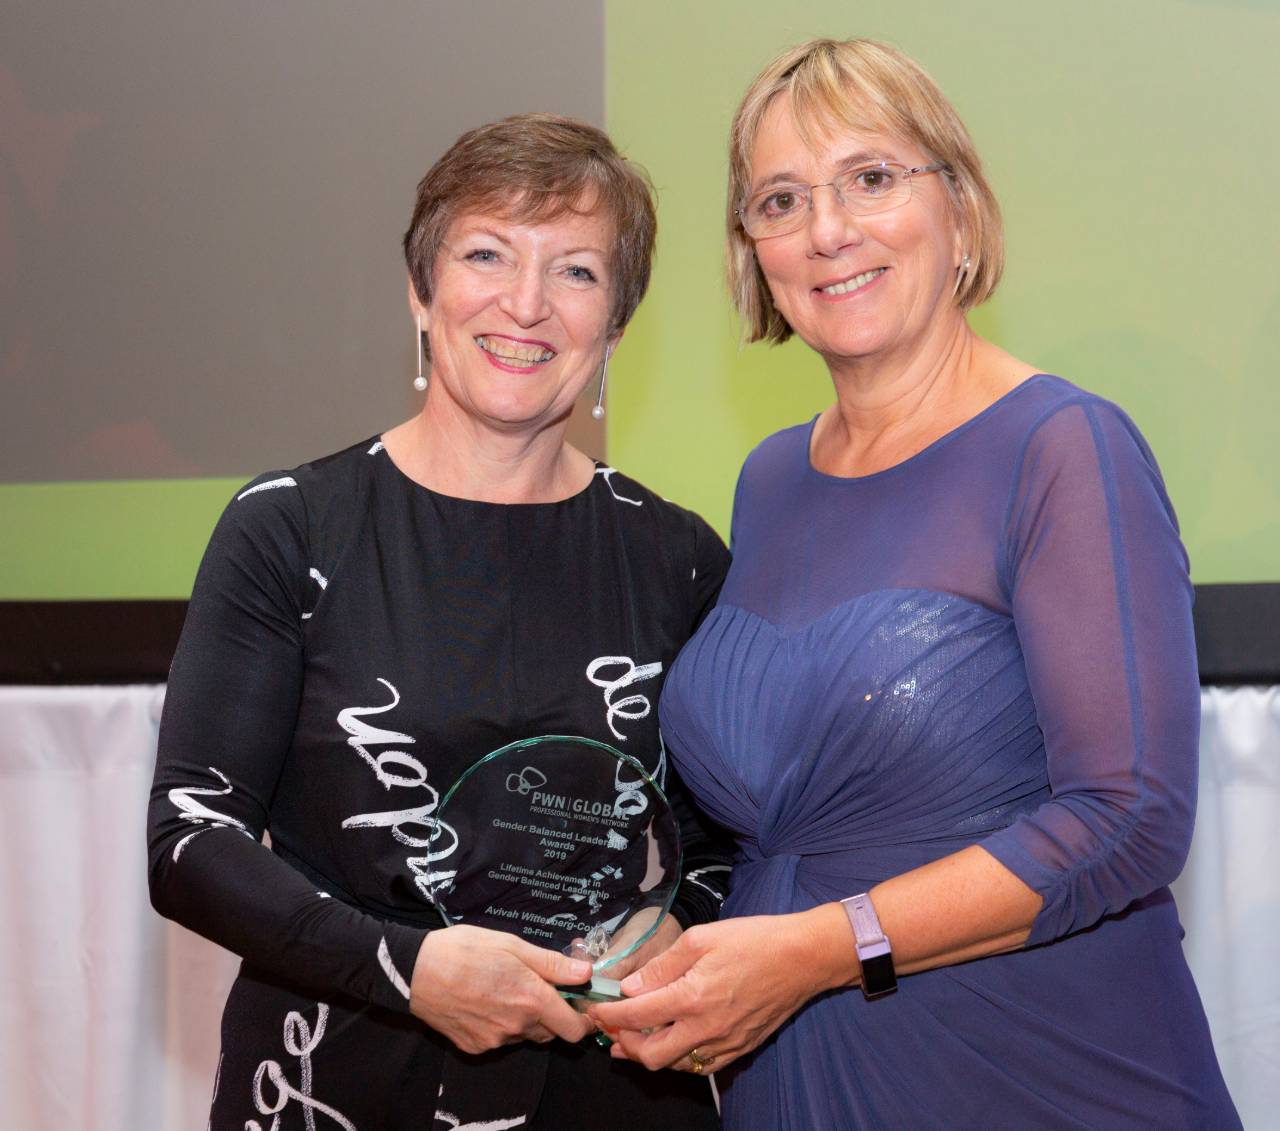 Julie Sinnamon CEO Enterprise Ireland and Avivah Wittenberg Cox CEO 20First